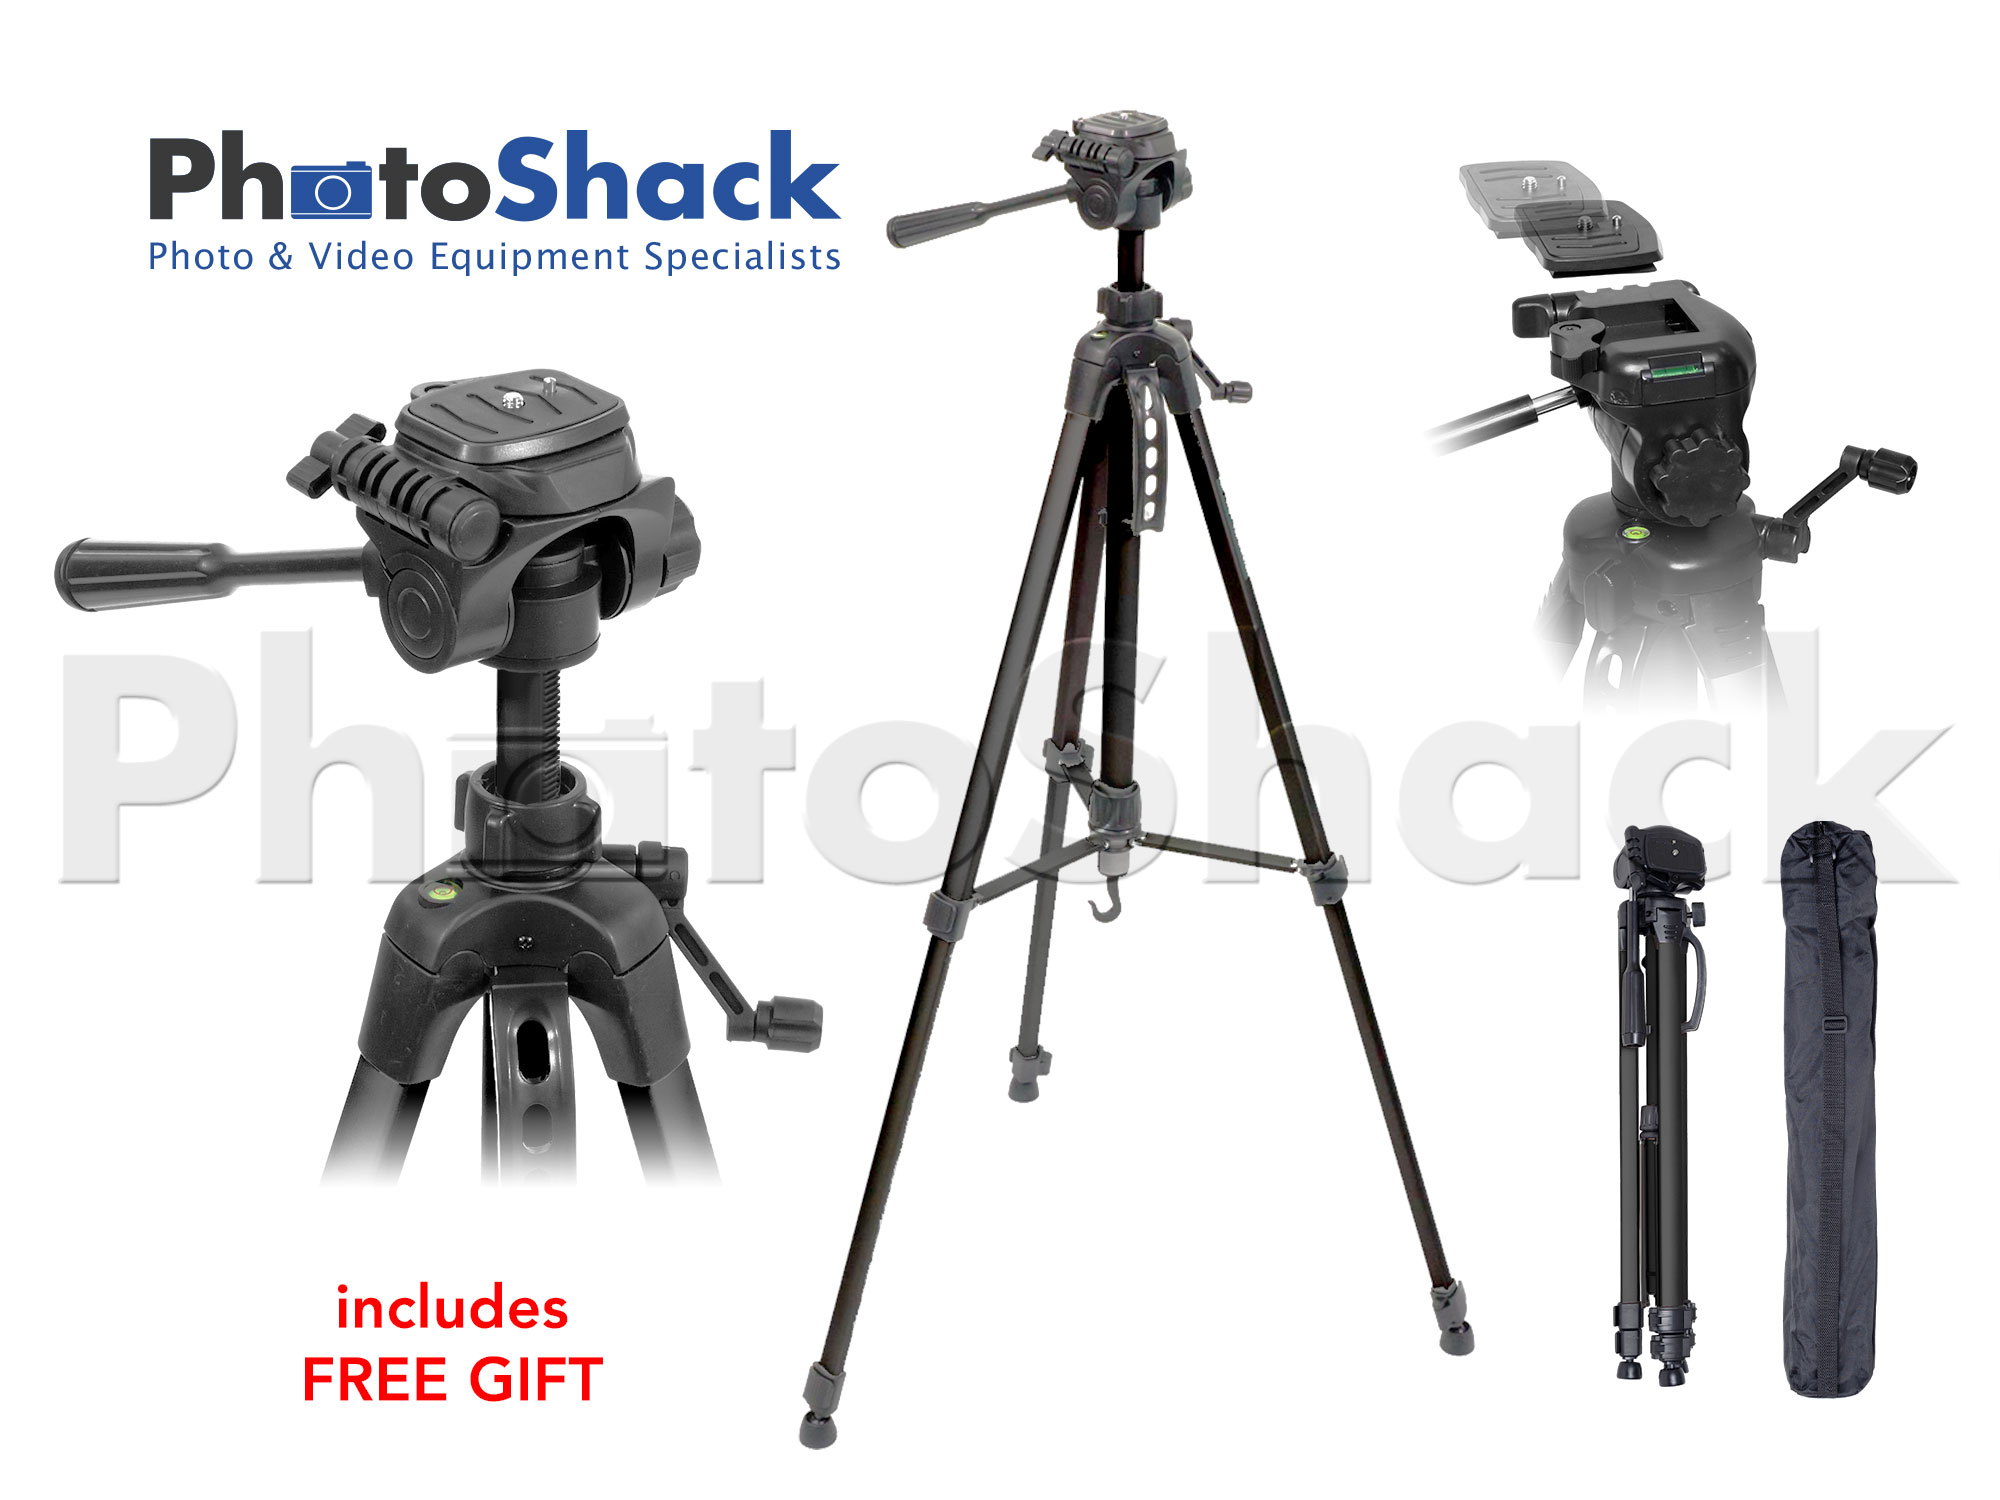 TRIPOD PHOTO/VIDEO 1.6m + FREE GIFT